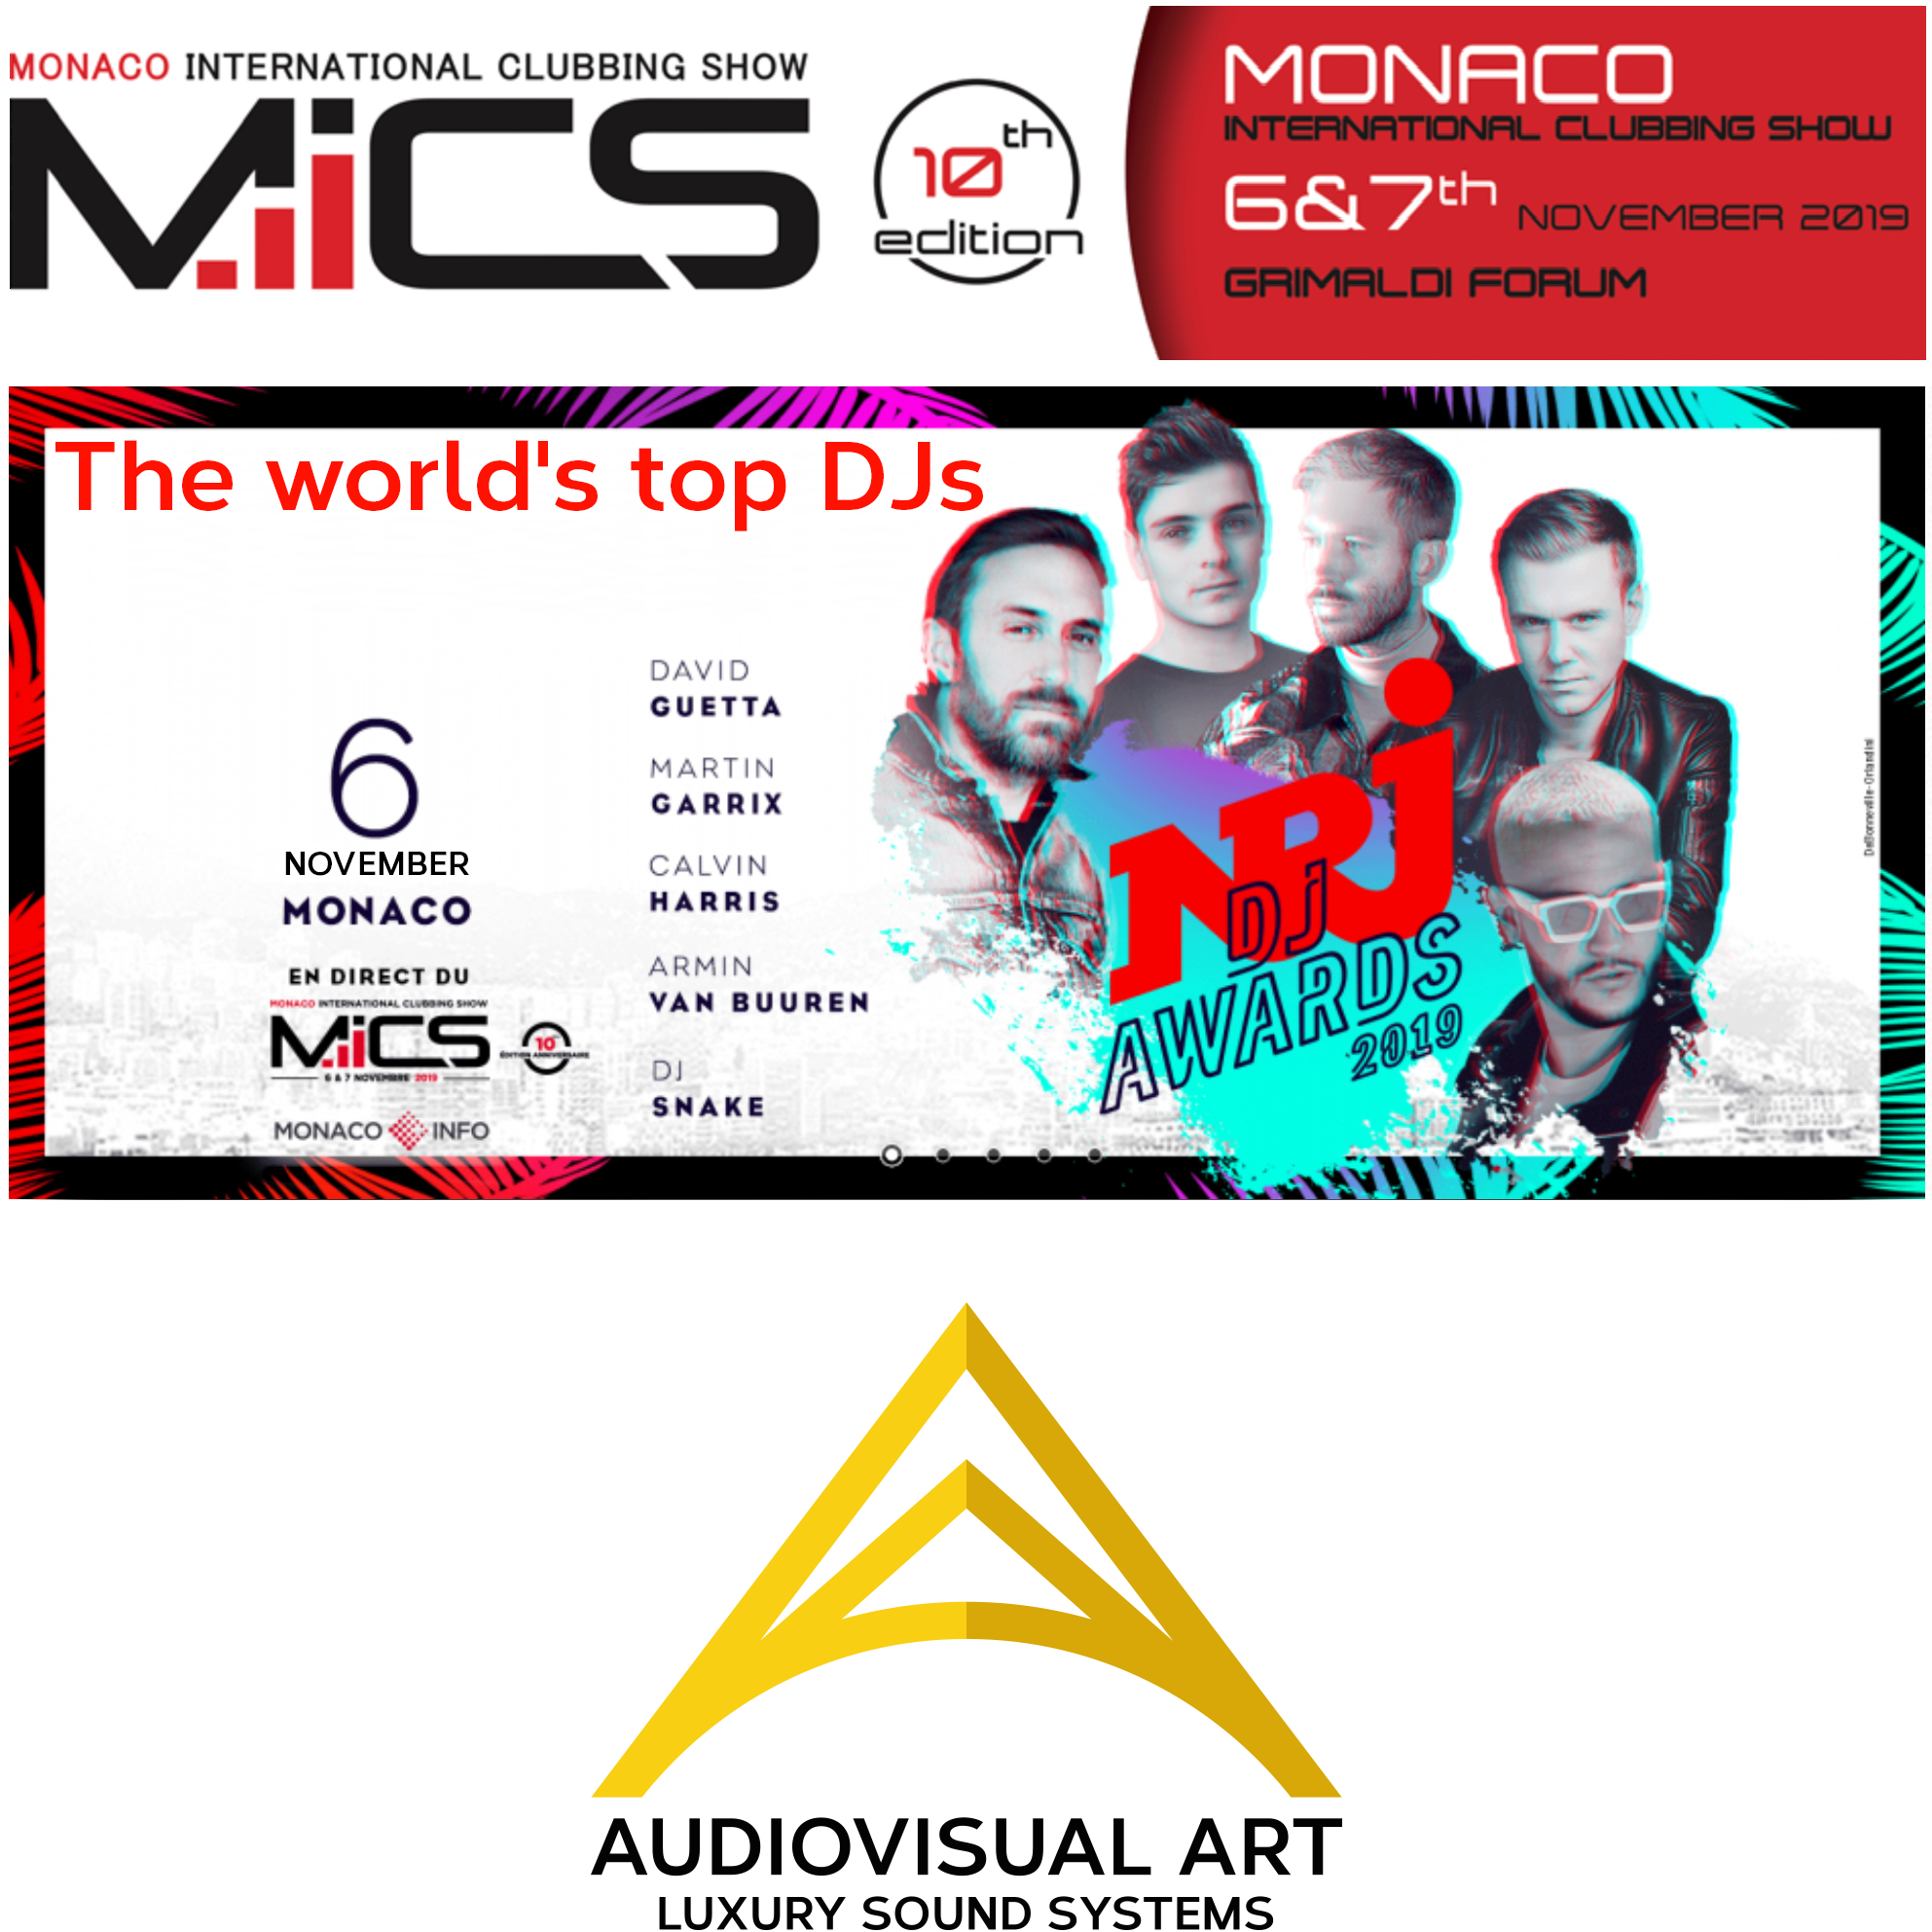 Audiovisual Art - MICS MONACO